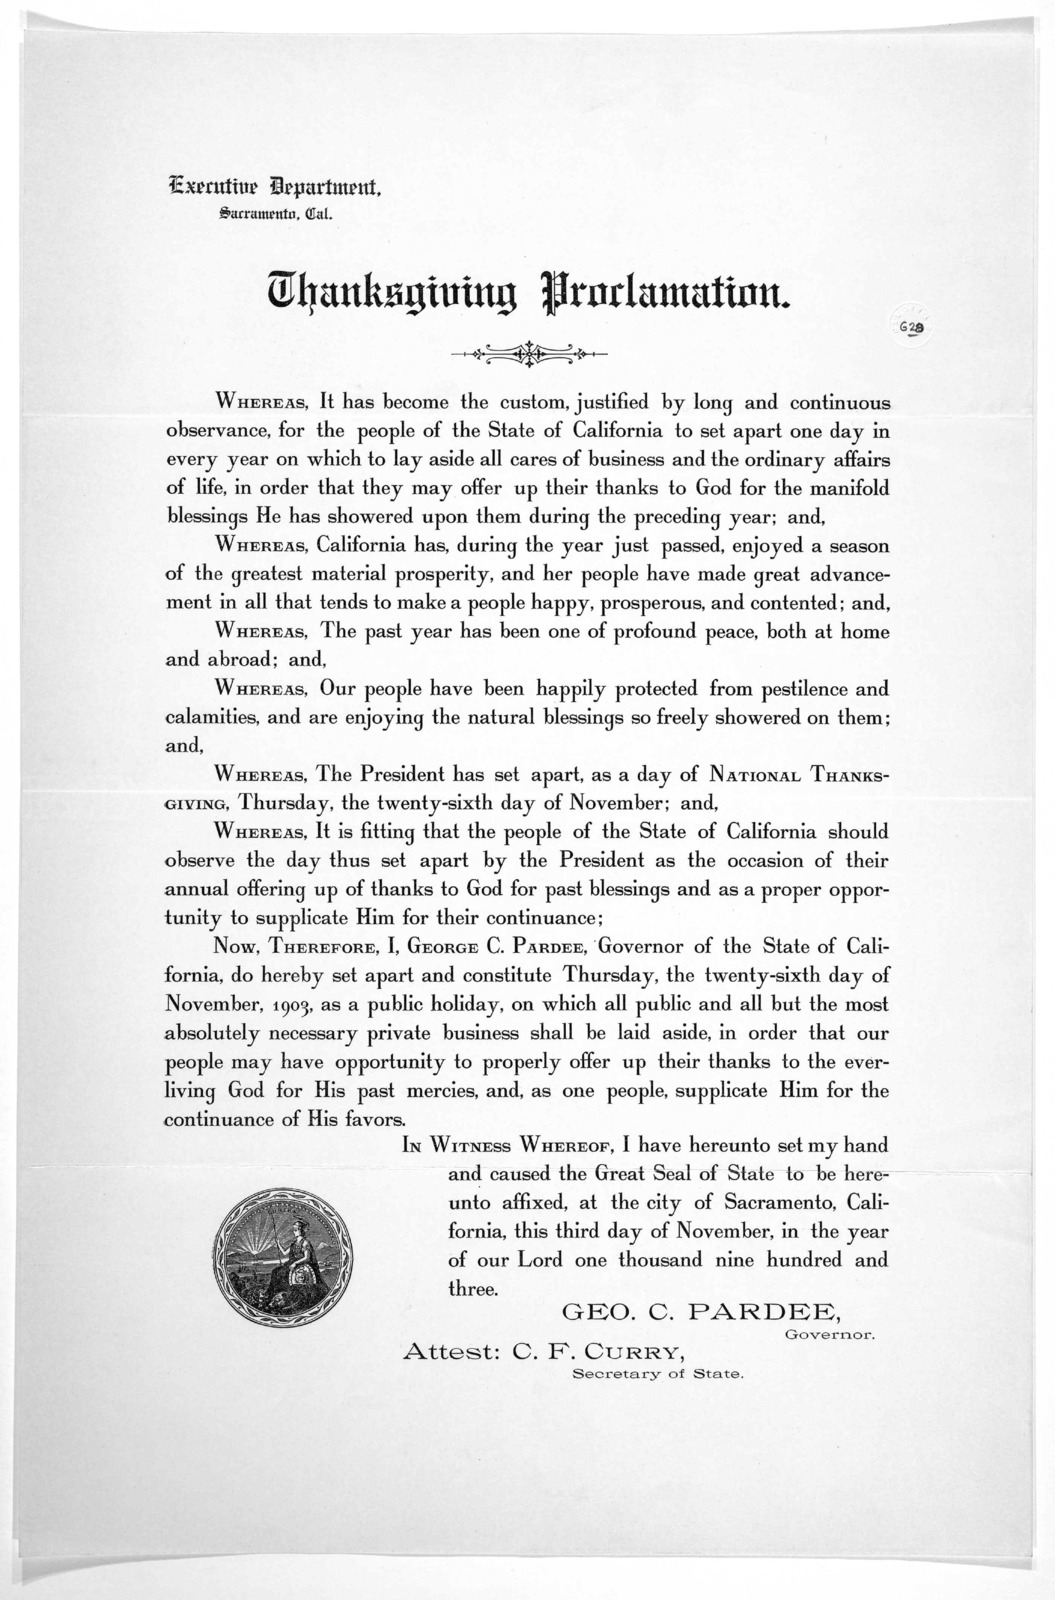 Thanksgiving proclamation November 3, 1903.